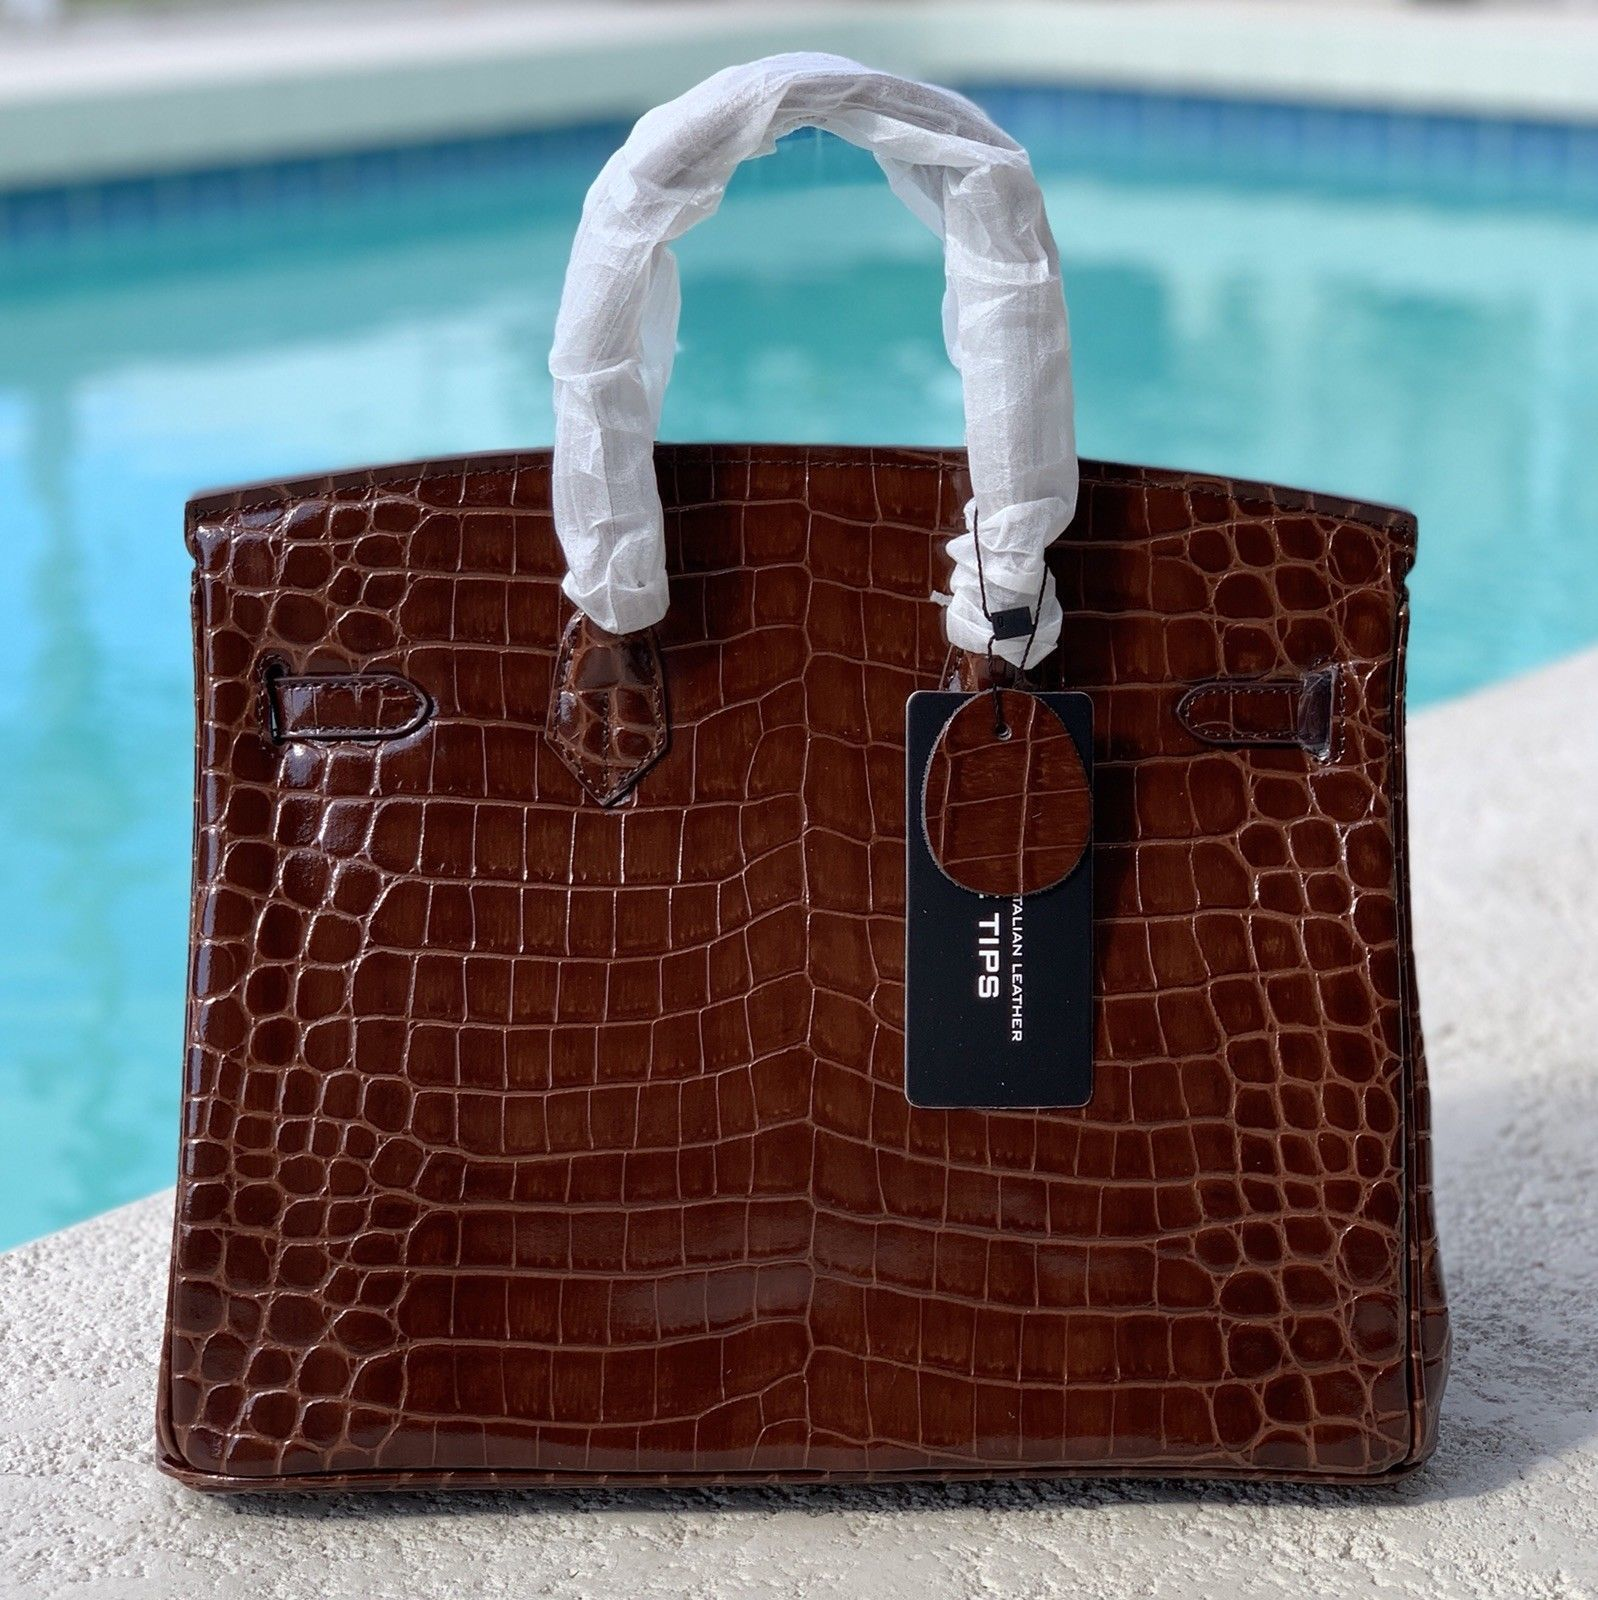 35cm Brown Crocodile Embossed Print Italian Leather Birkin Style Satchel Handbag